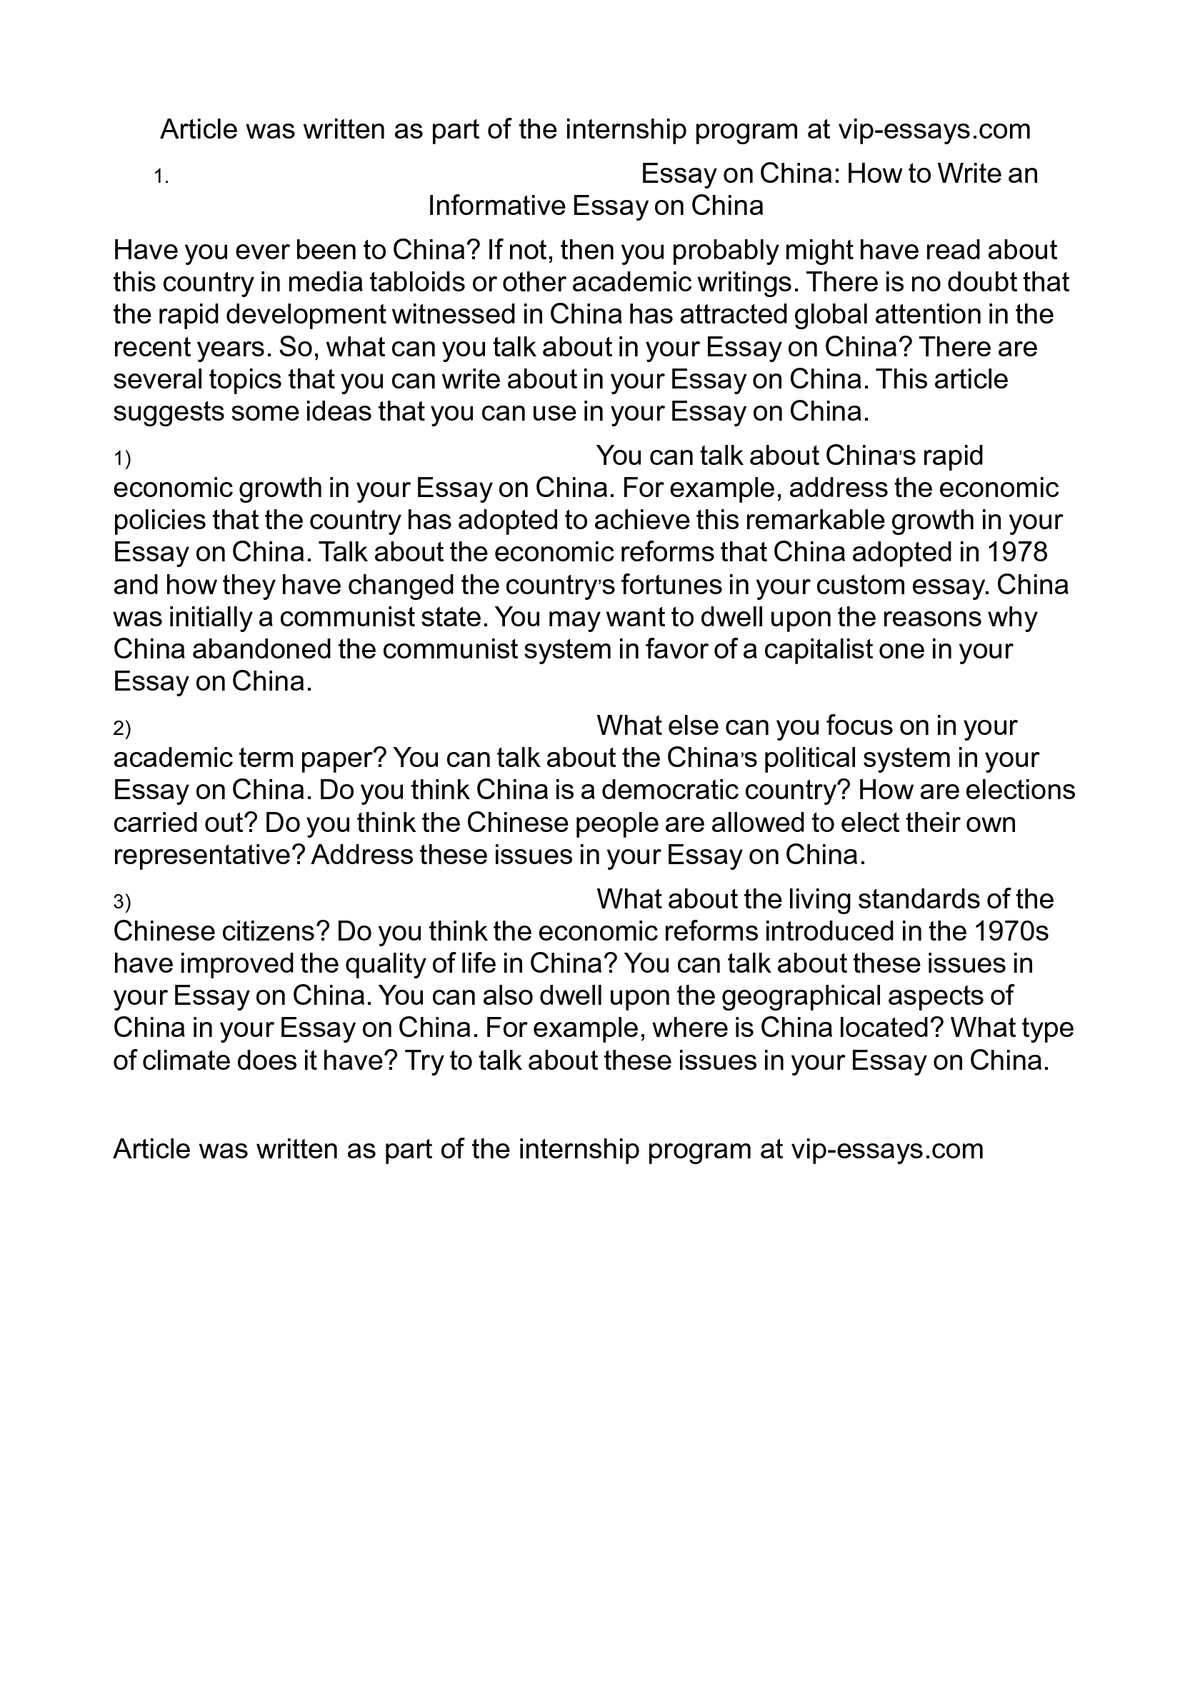 Calameo Essay On China How To Write An Informative